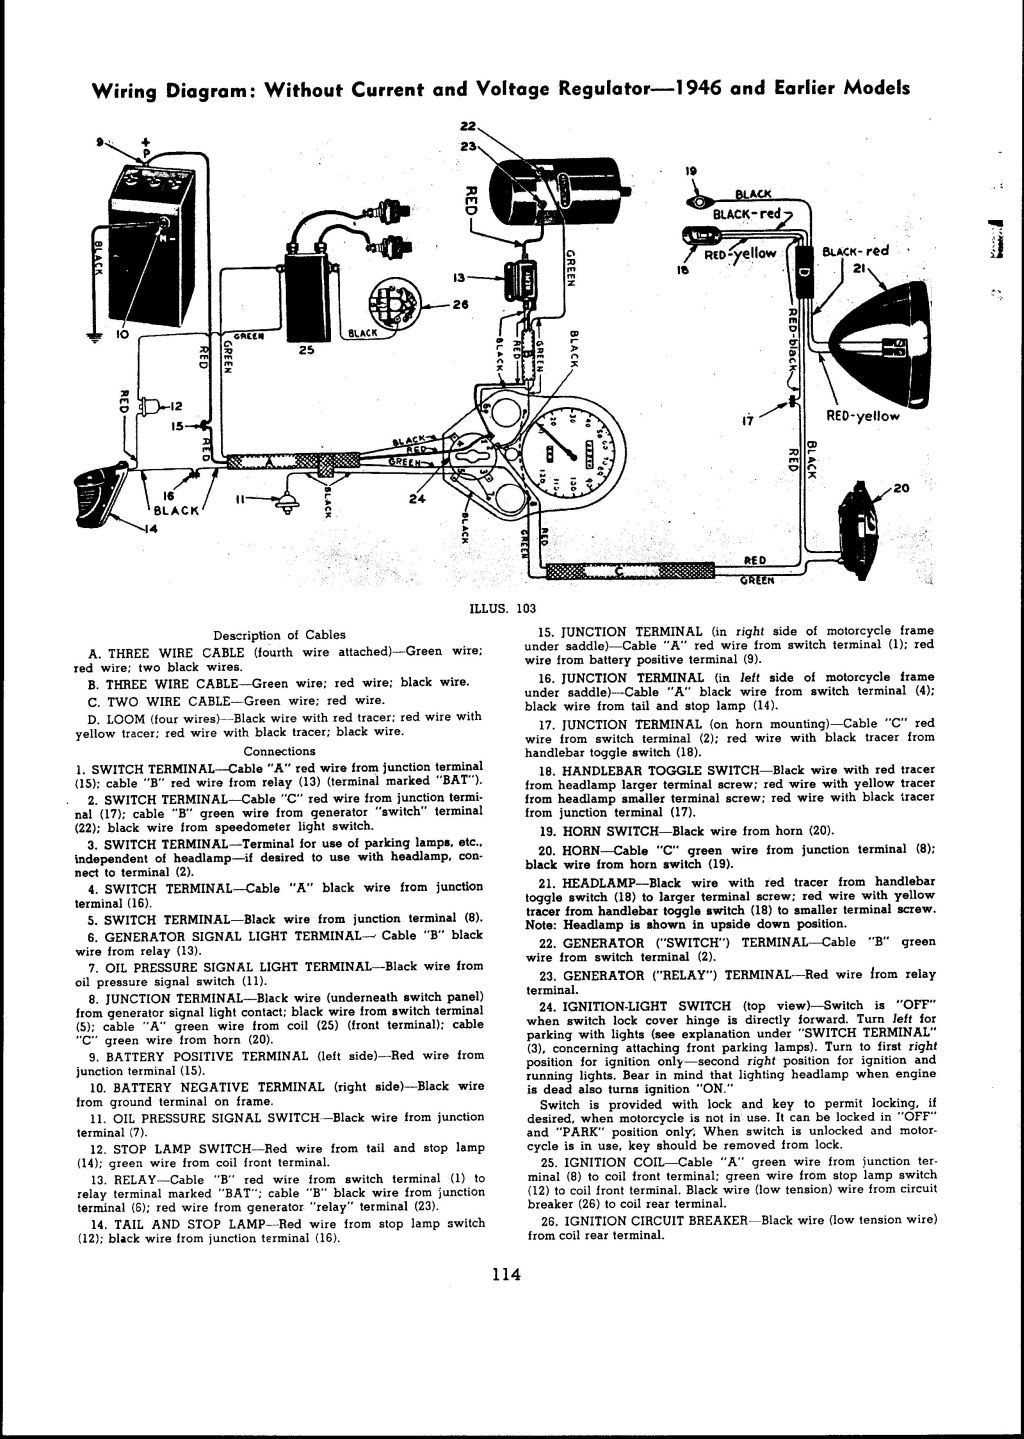 DOC] ➤ Diagram Work Hd Wiring Diagram Ebook | Schematic ... Harley Evo Wiring Diagrams Simplified on